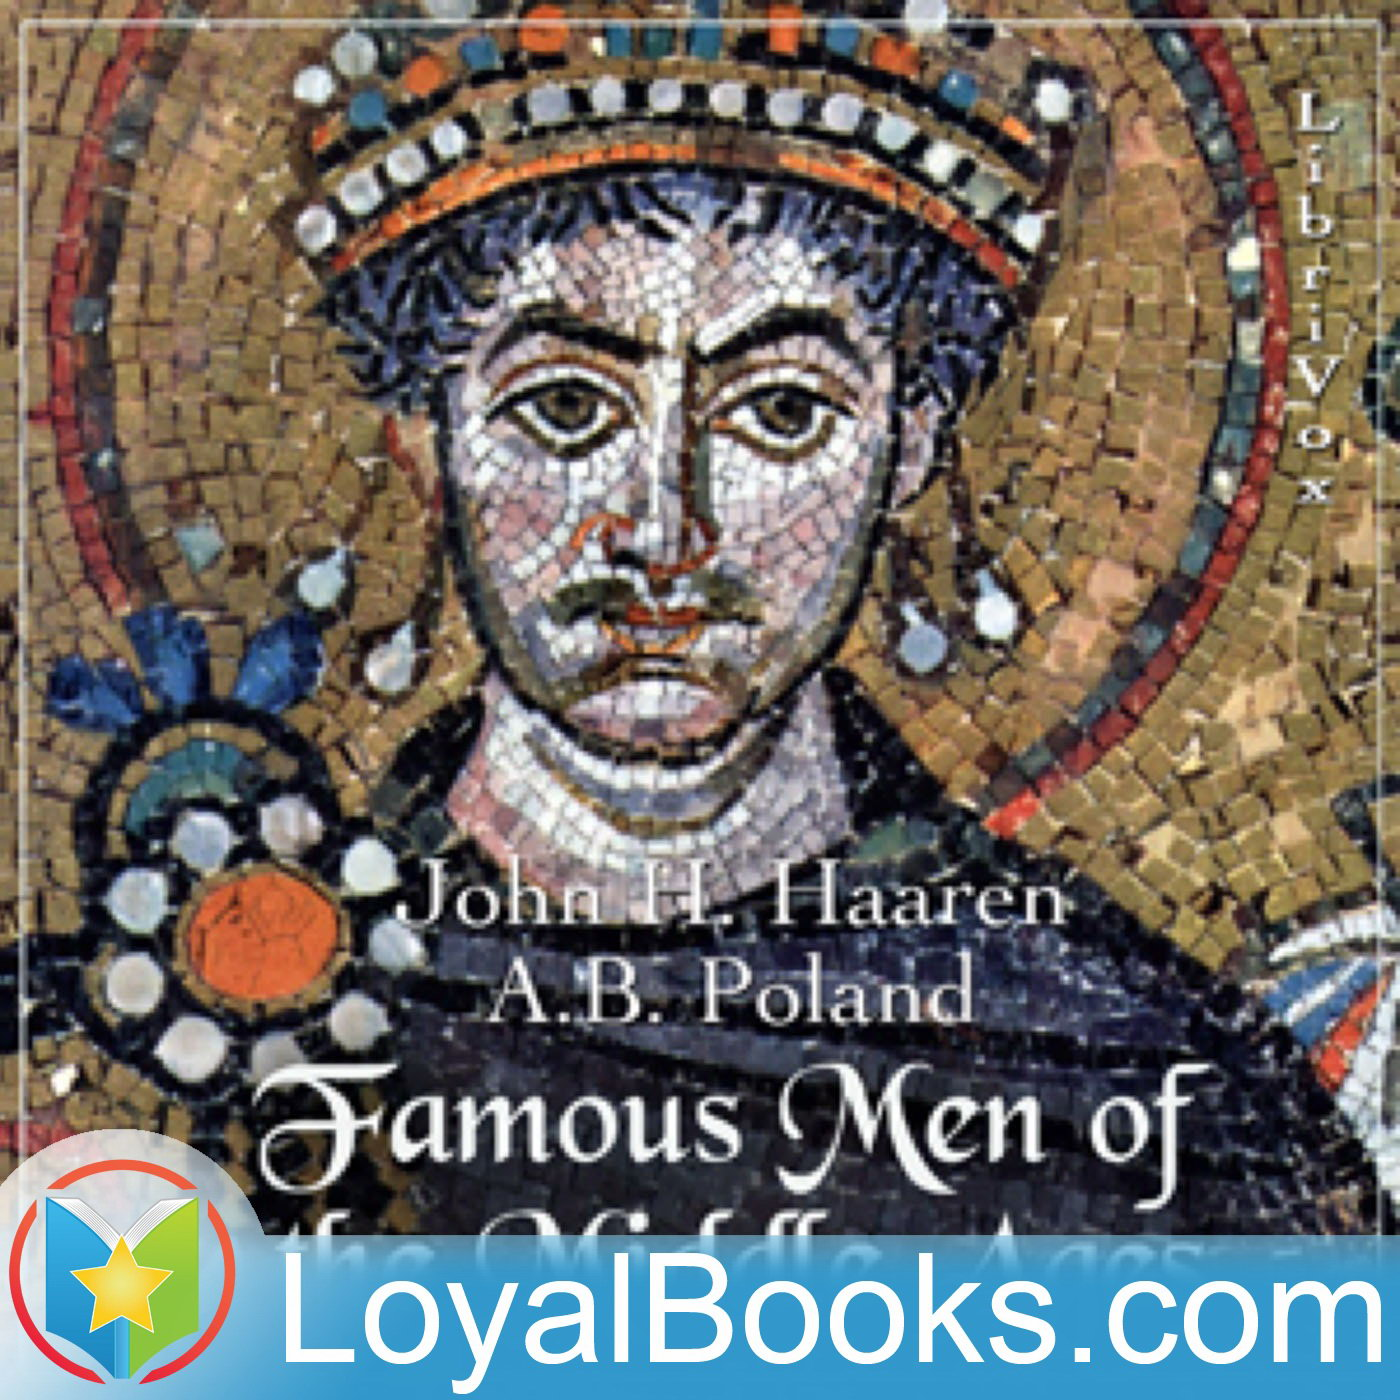 <![CDATA[Famous Men of the Middle Ages by John H. Haaren]]>